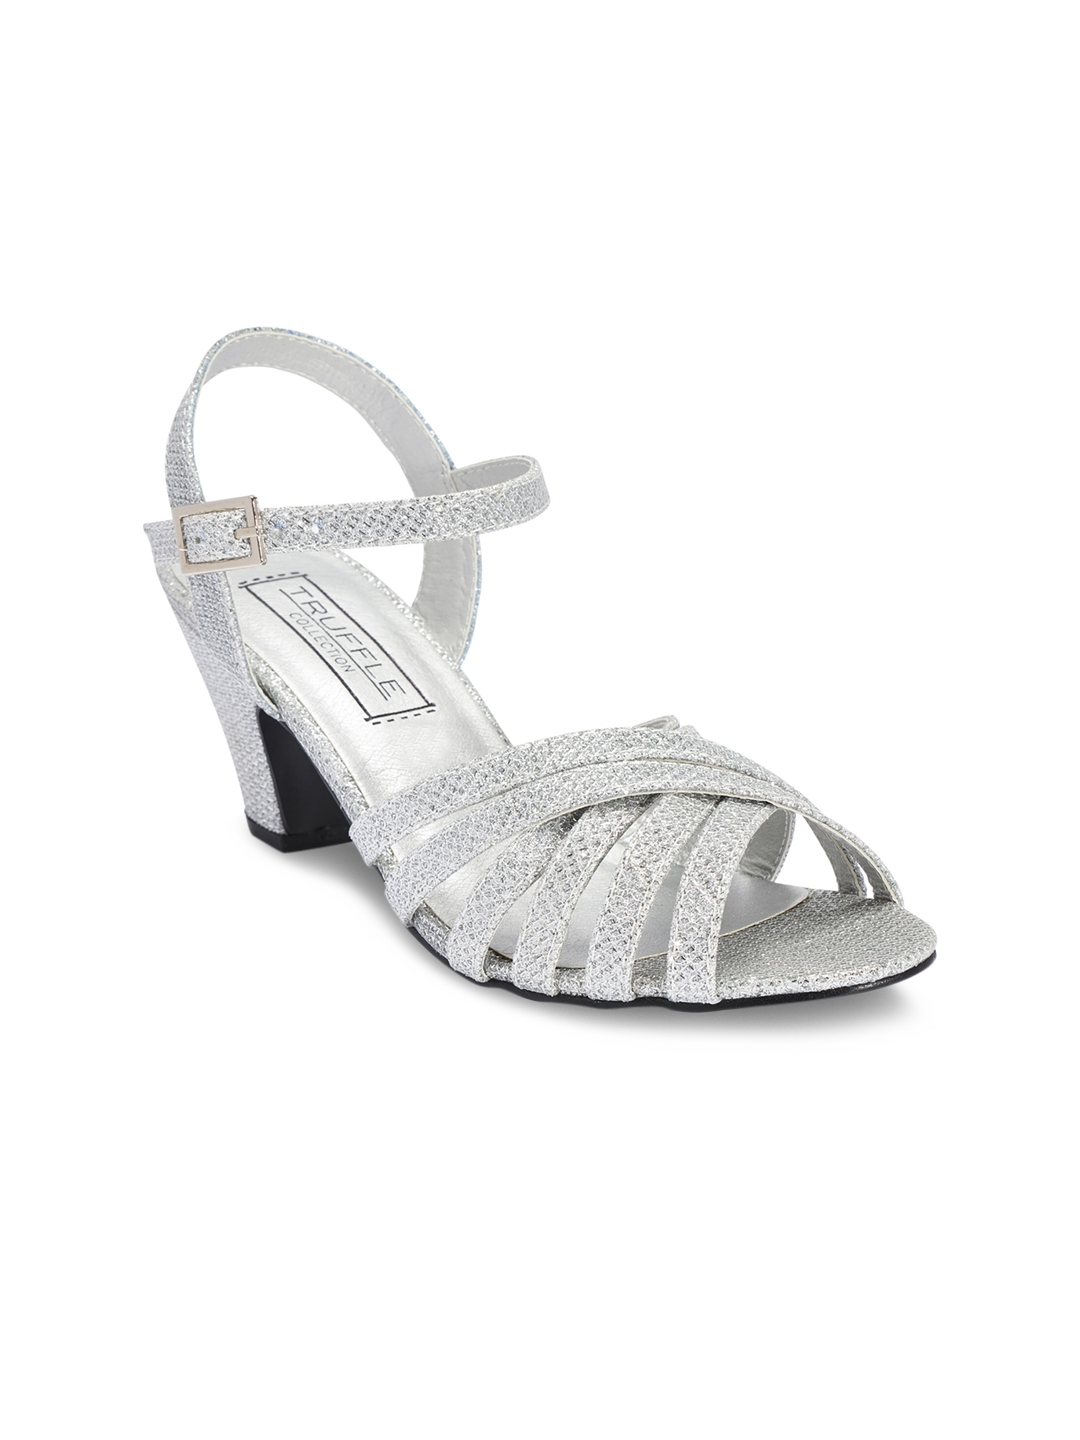 5809b1c875d Buy Truffle Collection Girls Silver Toned Solid Sandals - Heels for ...